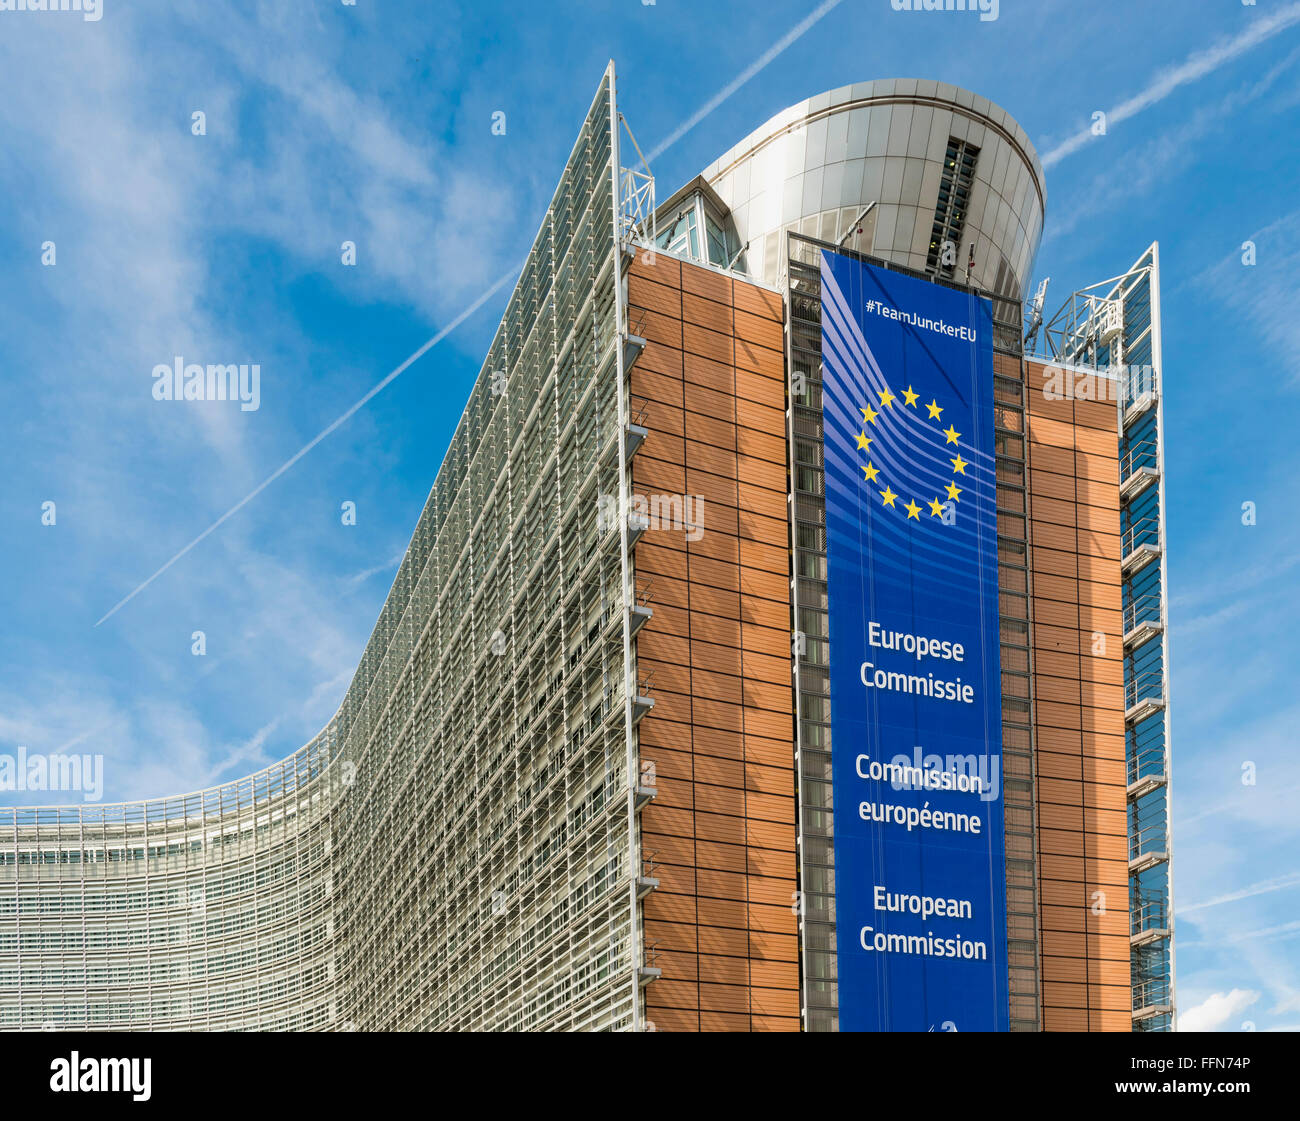 European Commission Headquarters, Berlaymont building, part of the European Parliament, Brussels, Belgium, Europe - Stock Image